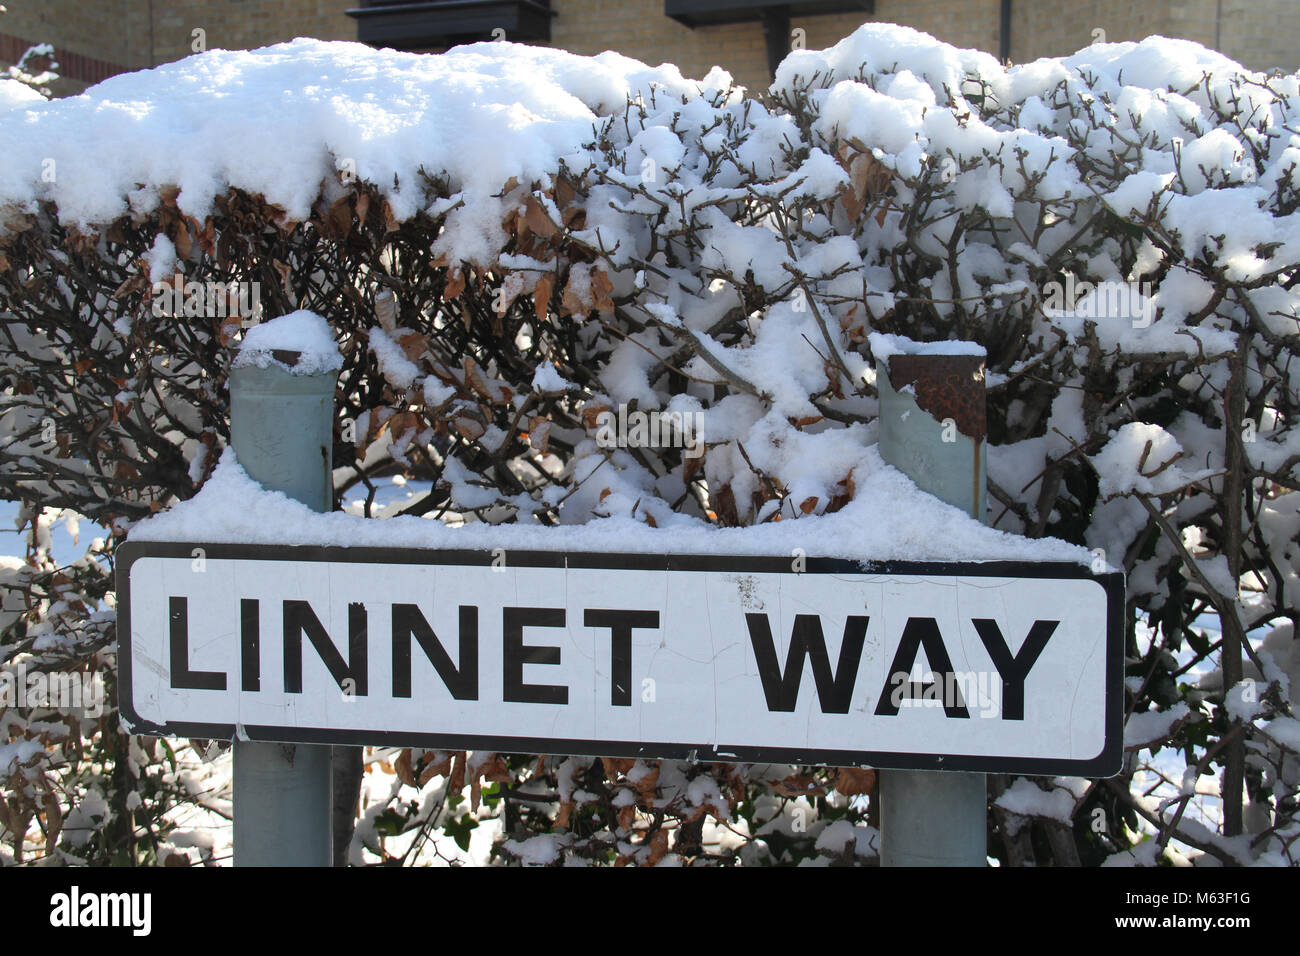 Purfleet, UK - February 28: A snow-covered street sign in Purfleet. Motorist and pedestrians commute on 28 February - Stock Image